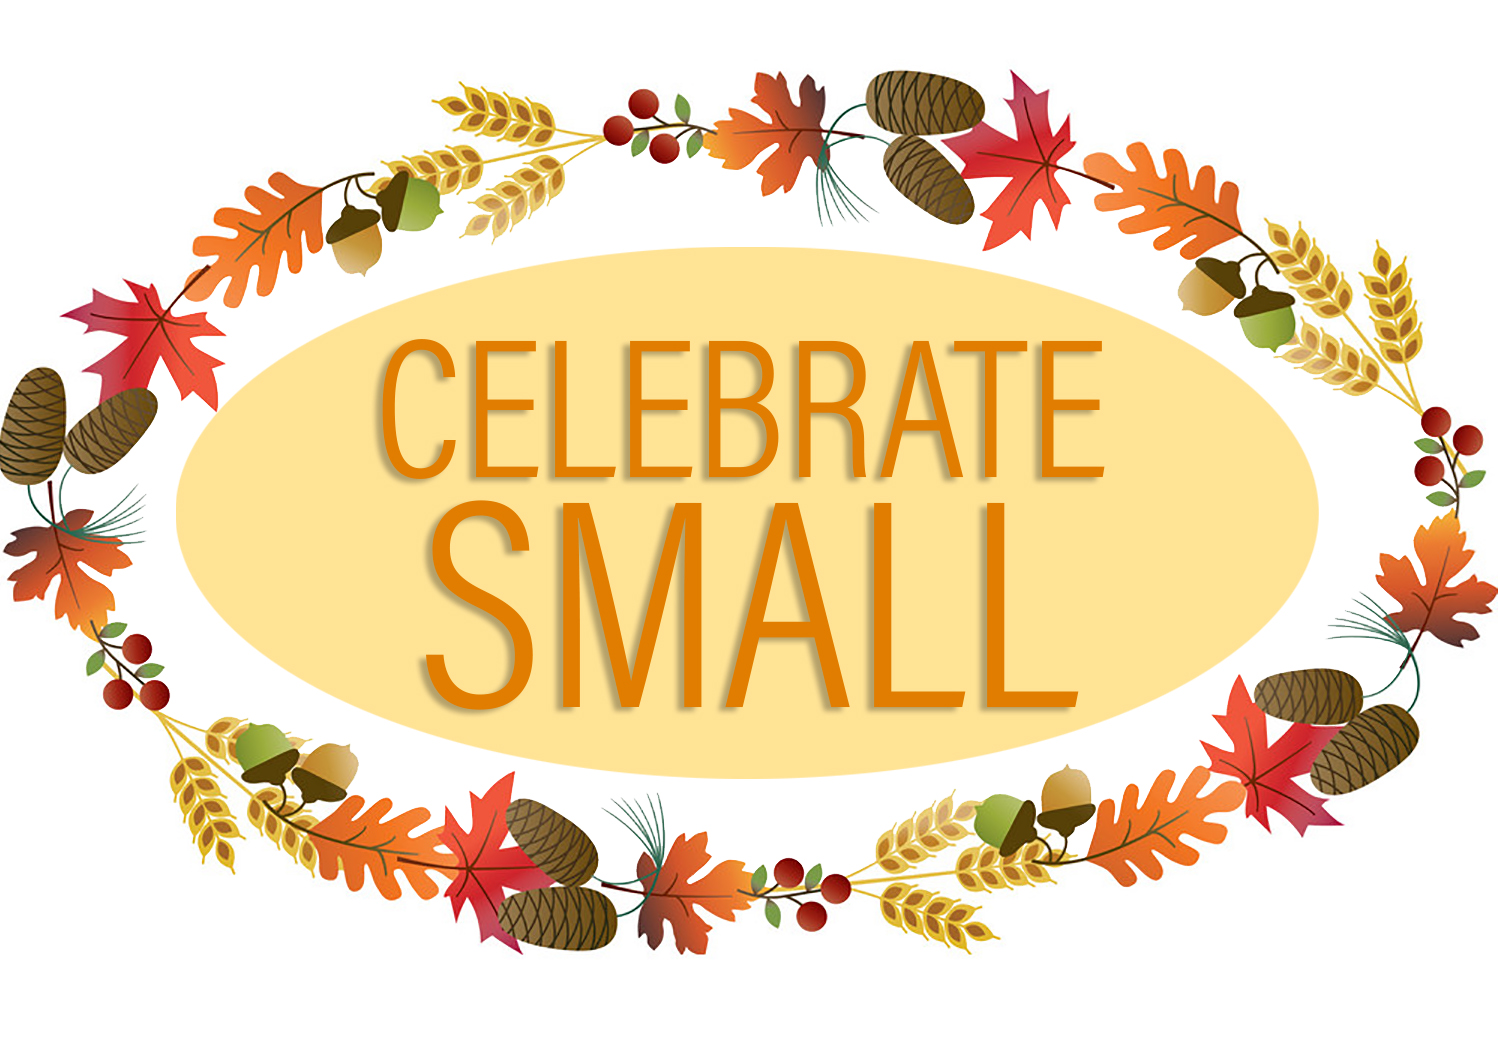 Thanksgiving: Celebrate Small